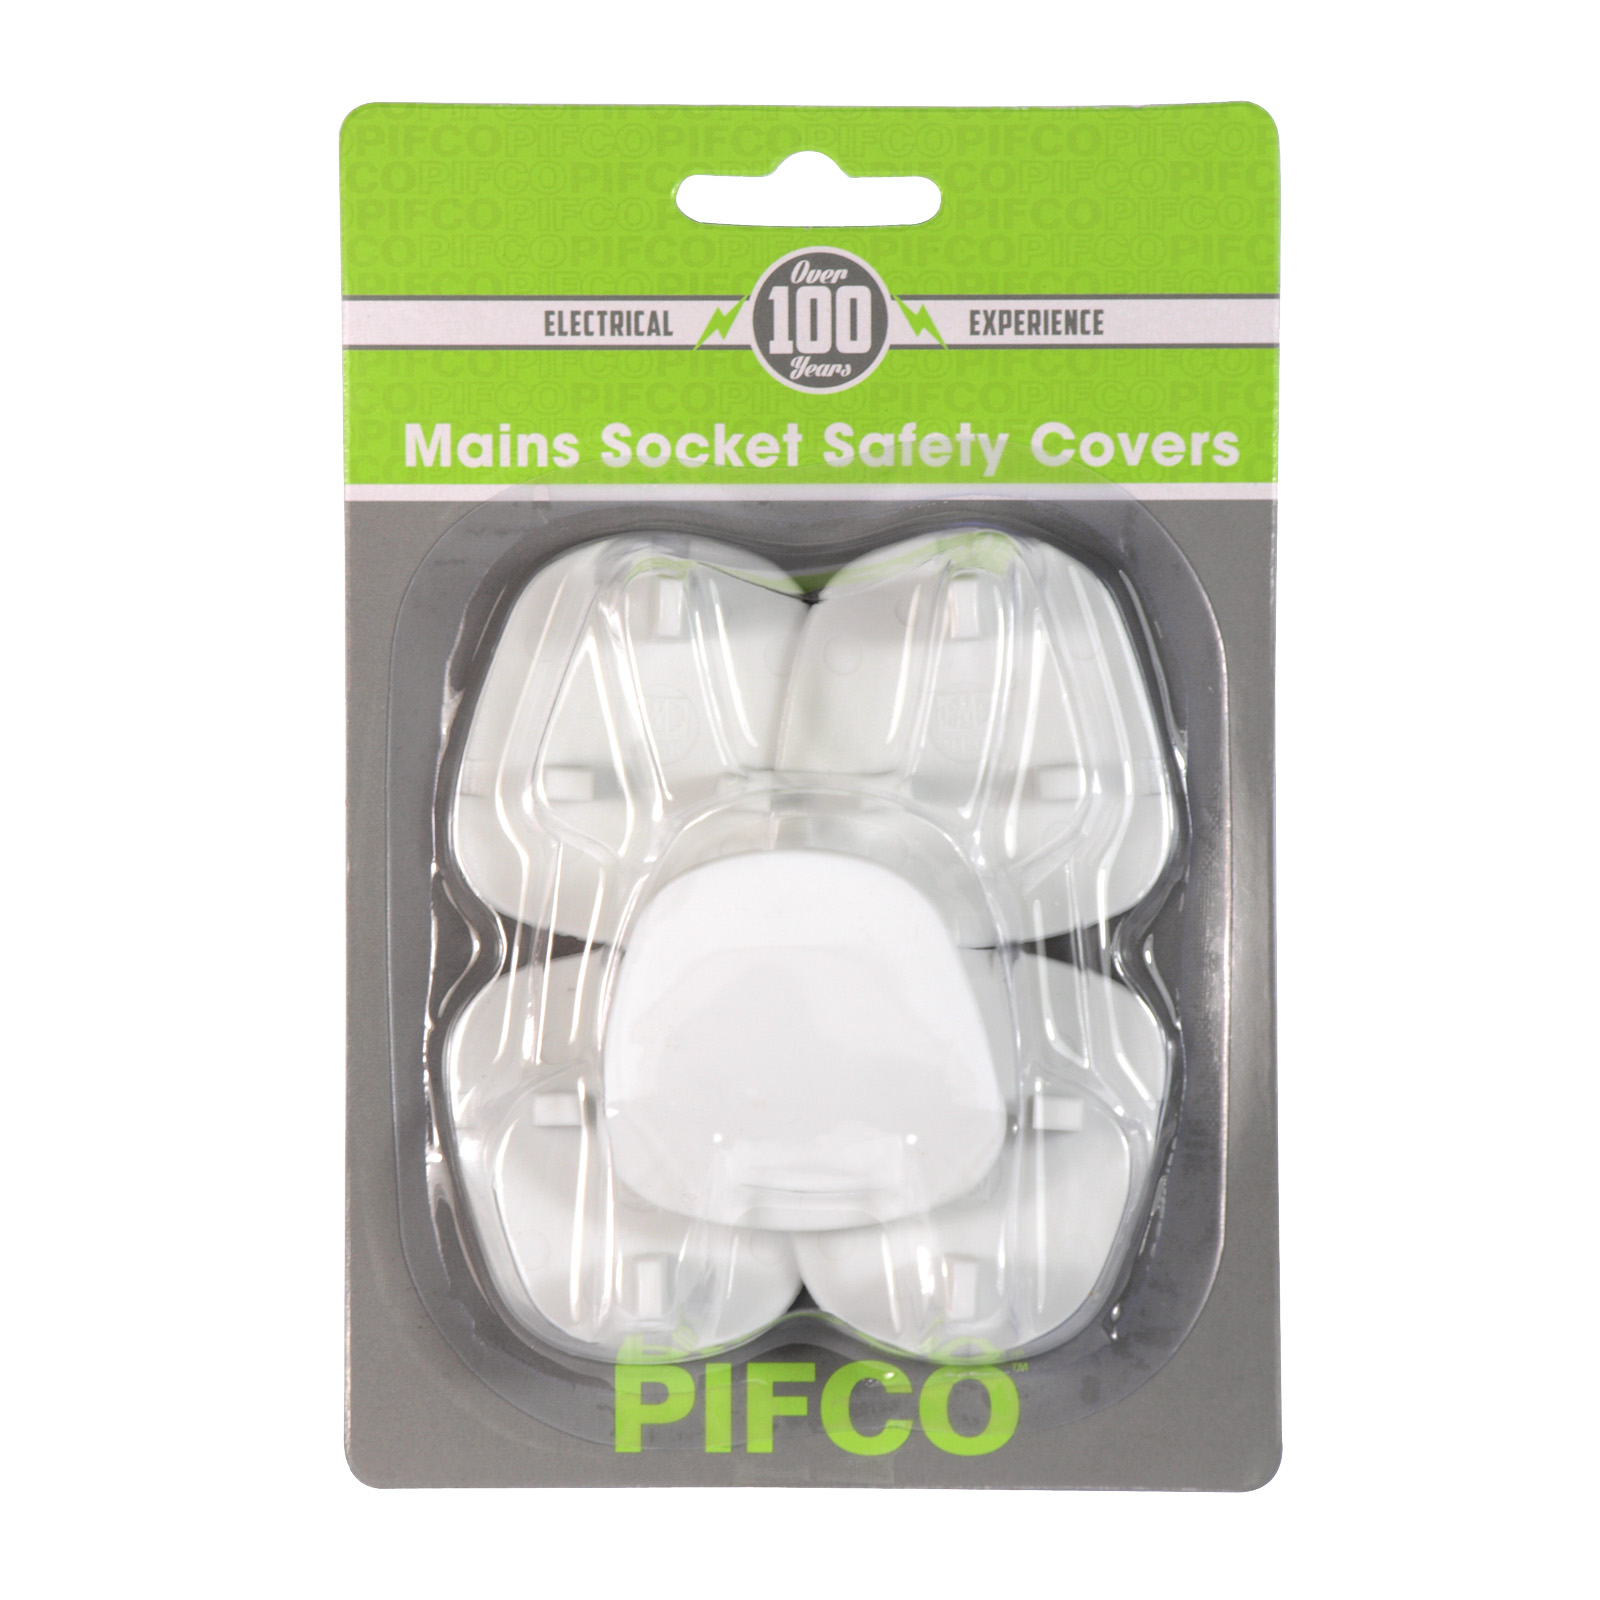 PIFCO 5 MAINS SOCKET SAFETY COVERS